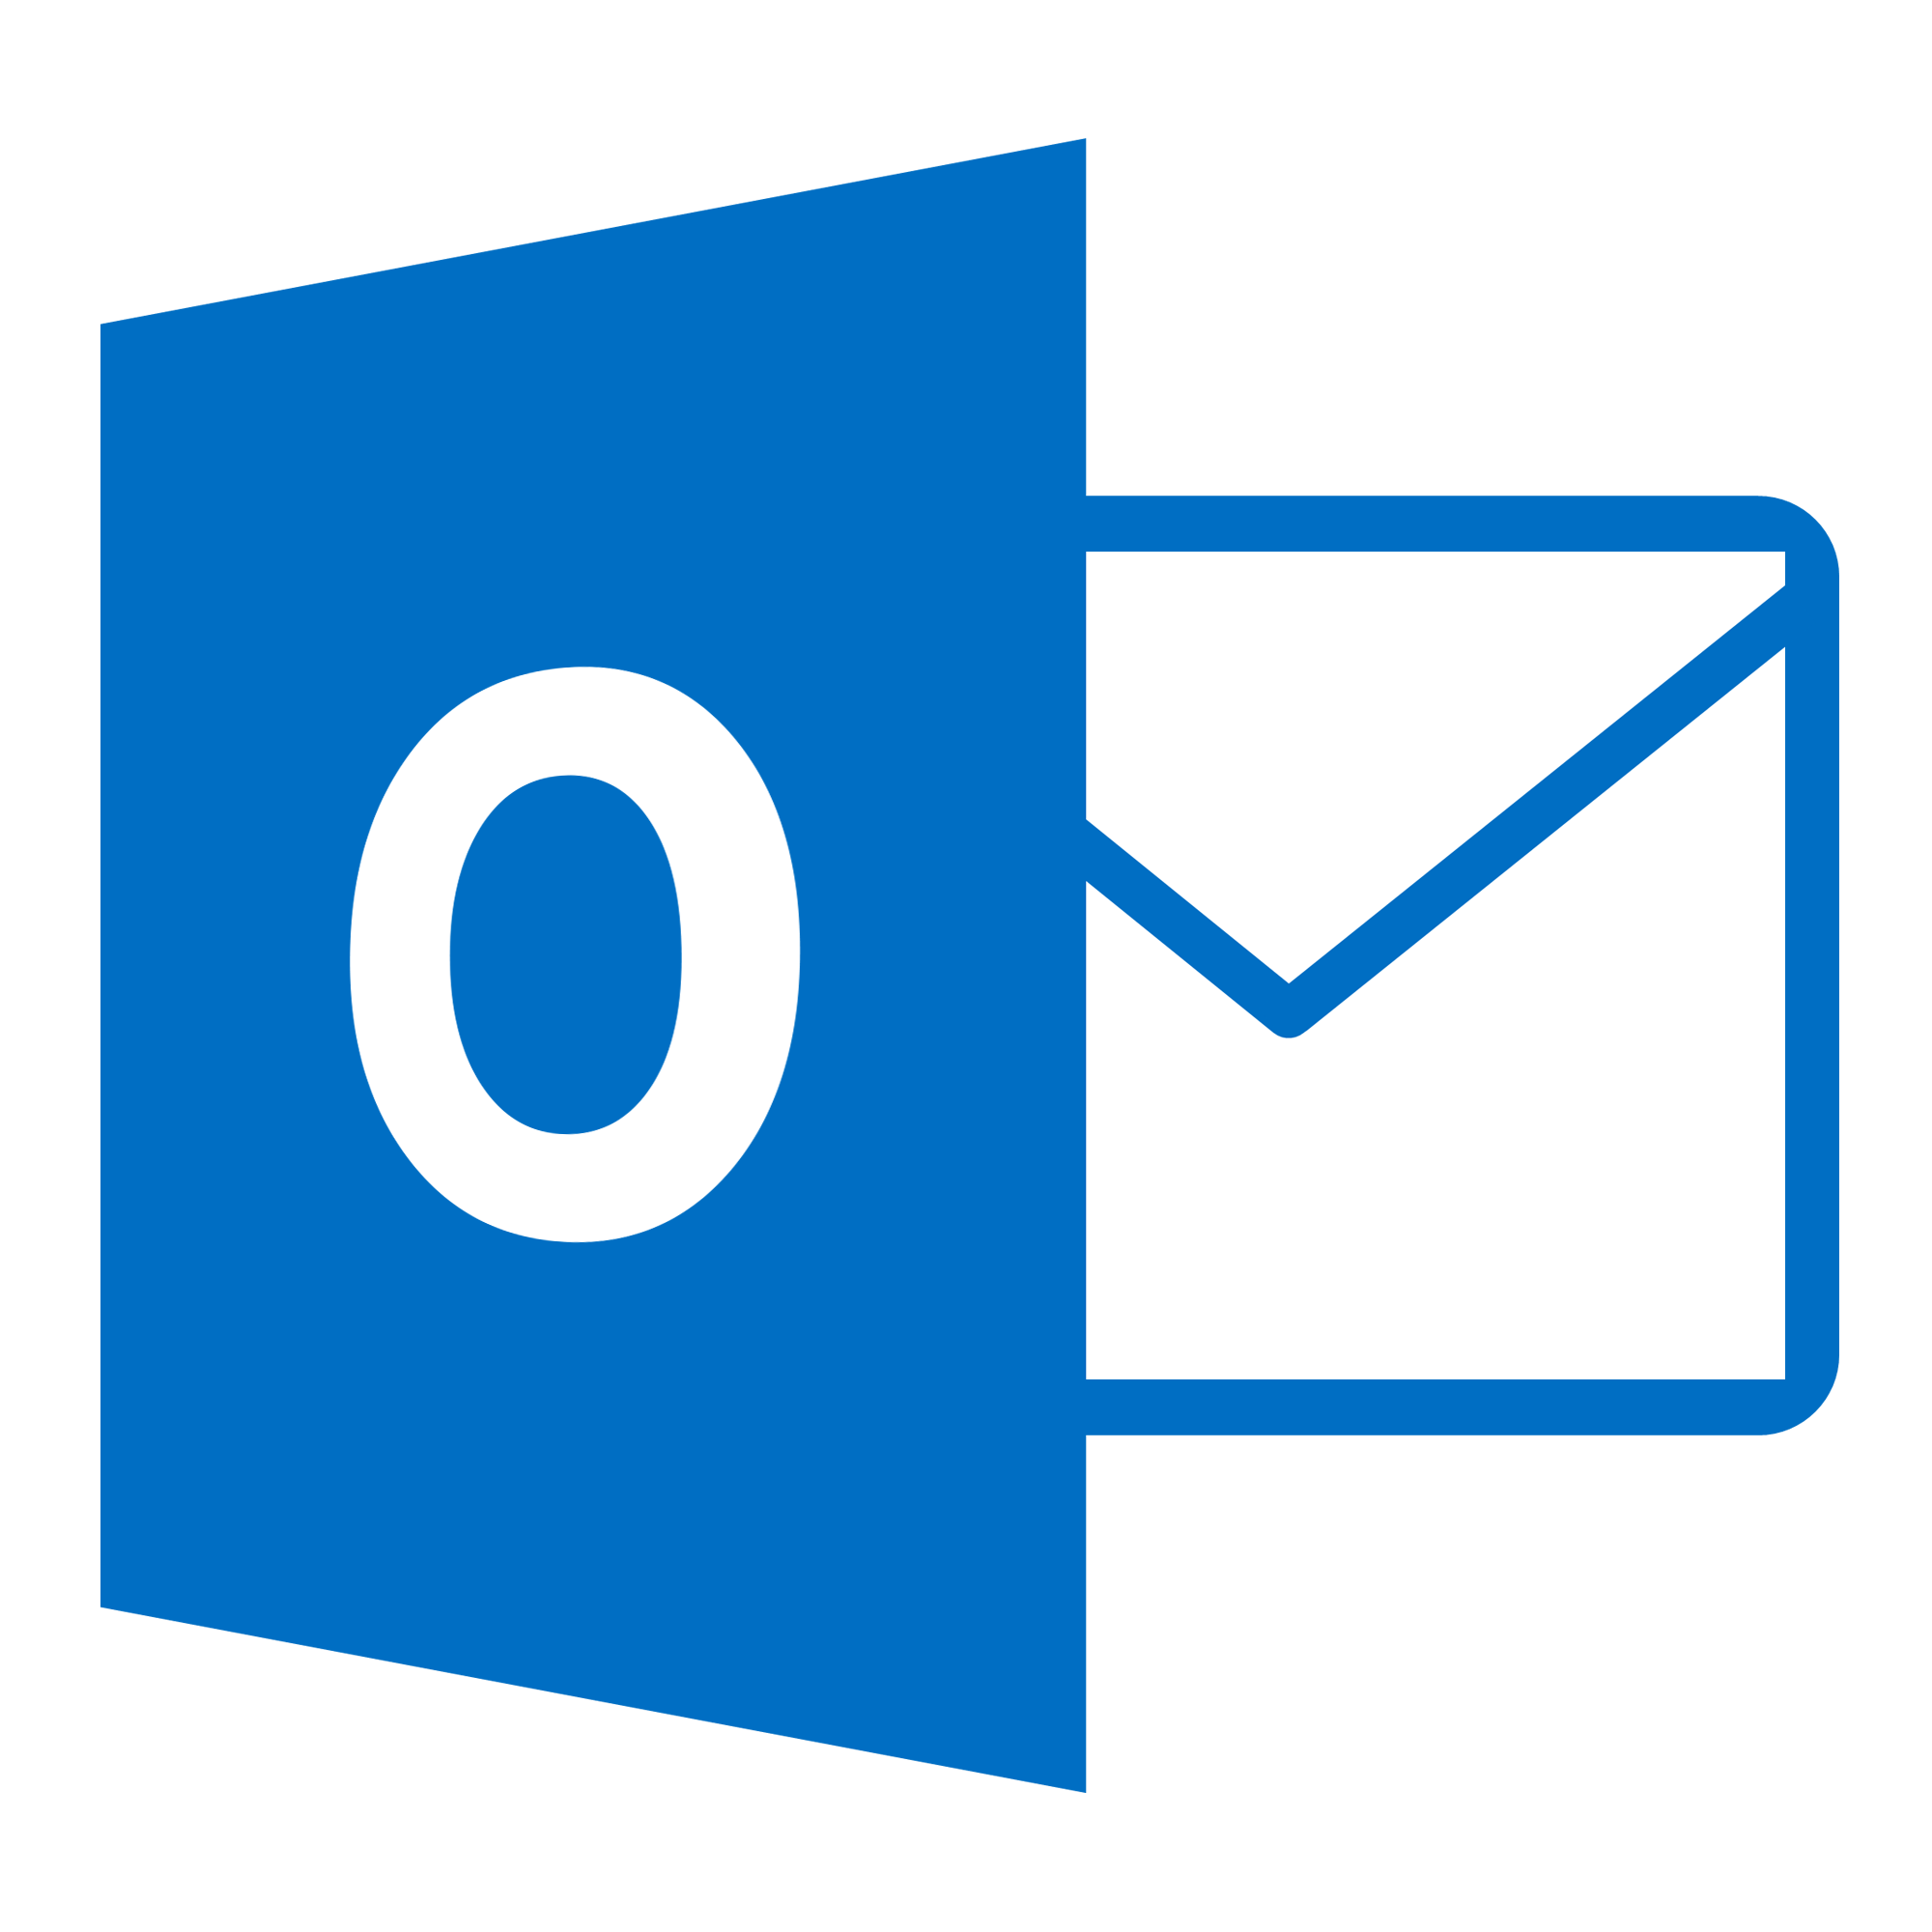 Microsoft outlook email logo